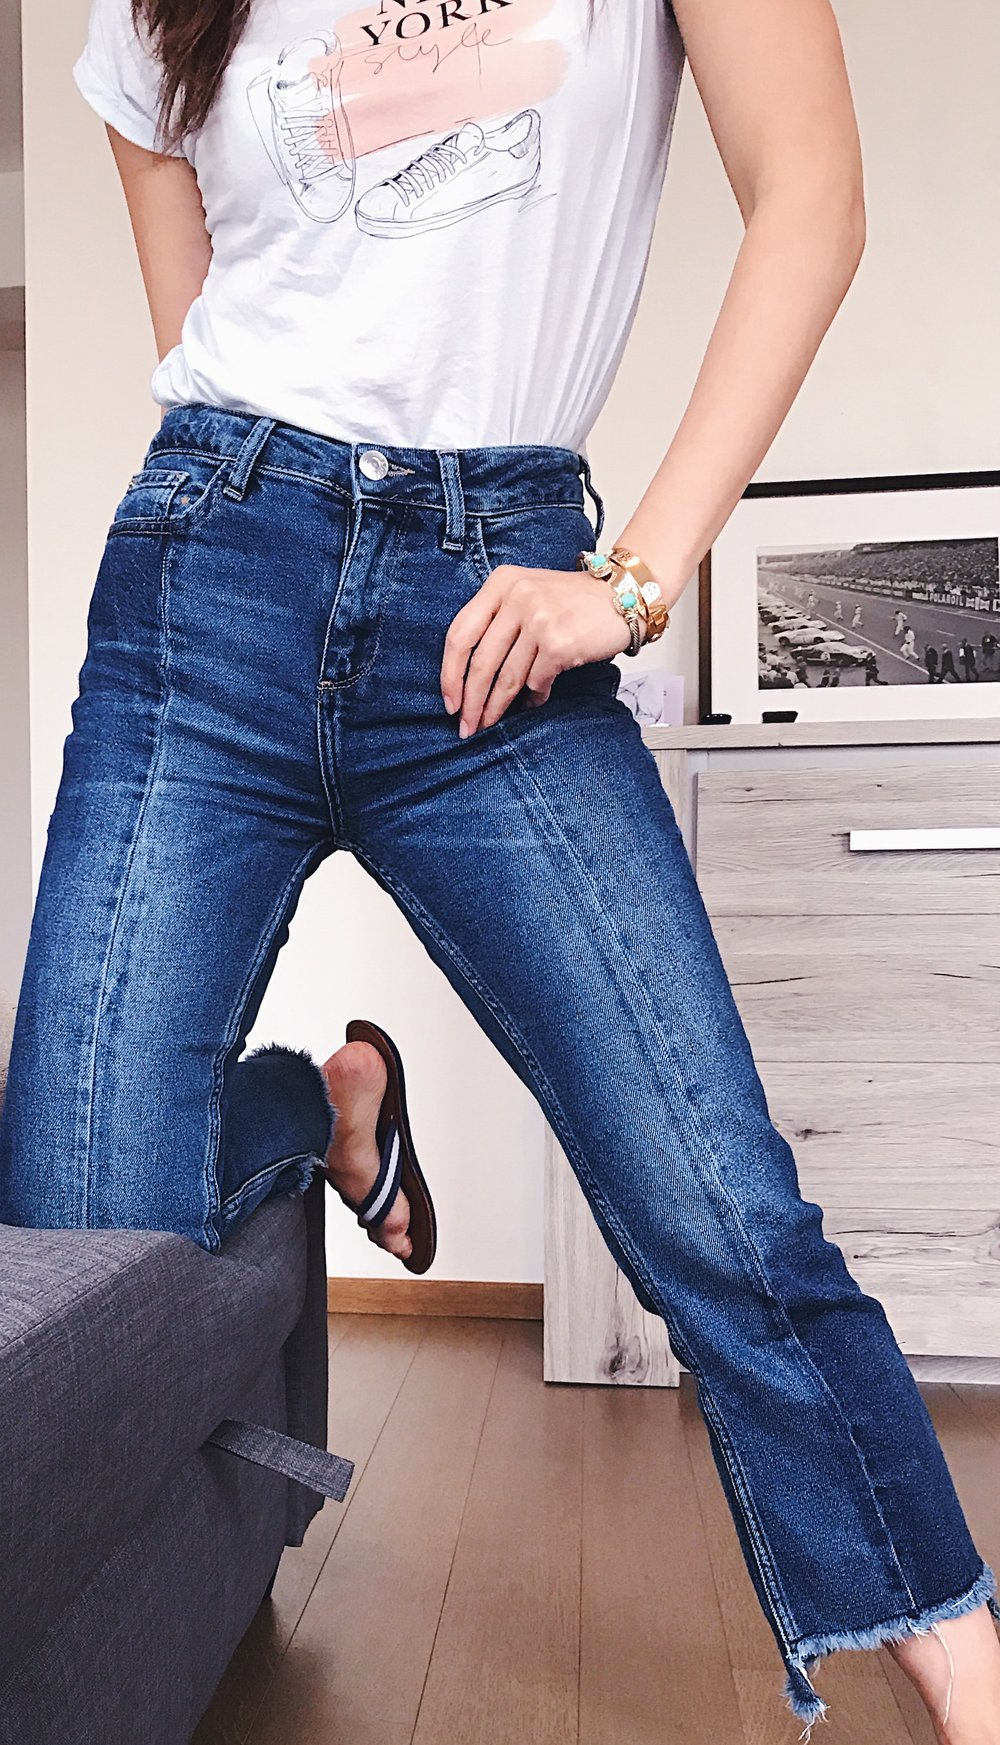 BDG (Urban Outfitters) Jeans. These aren't available online (in Belgium) so I placed similar ones from Madewell in the Gallery for you to shop.